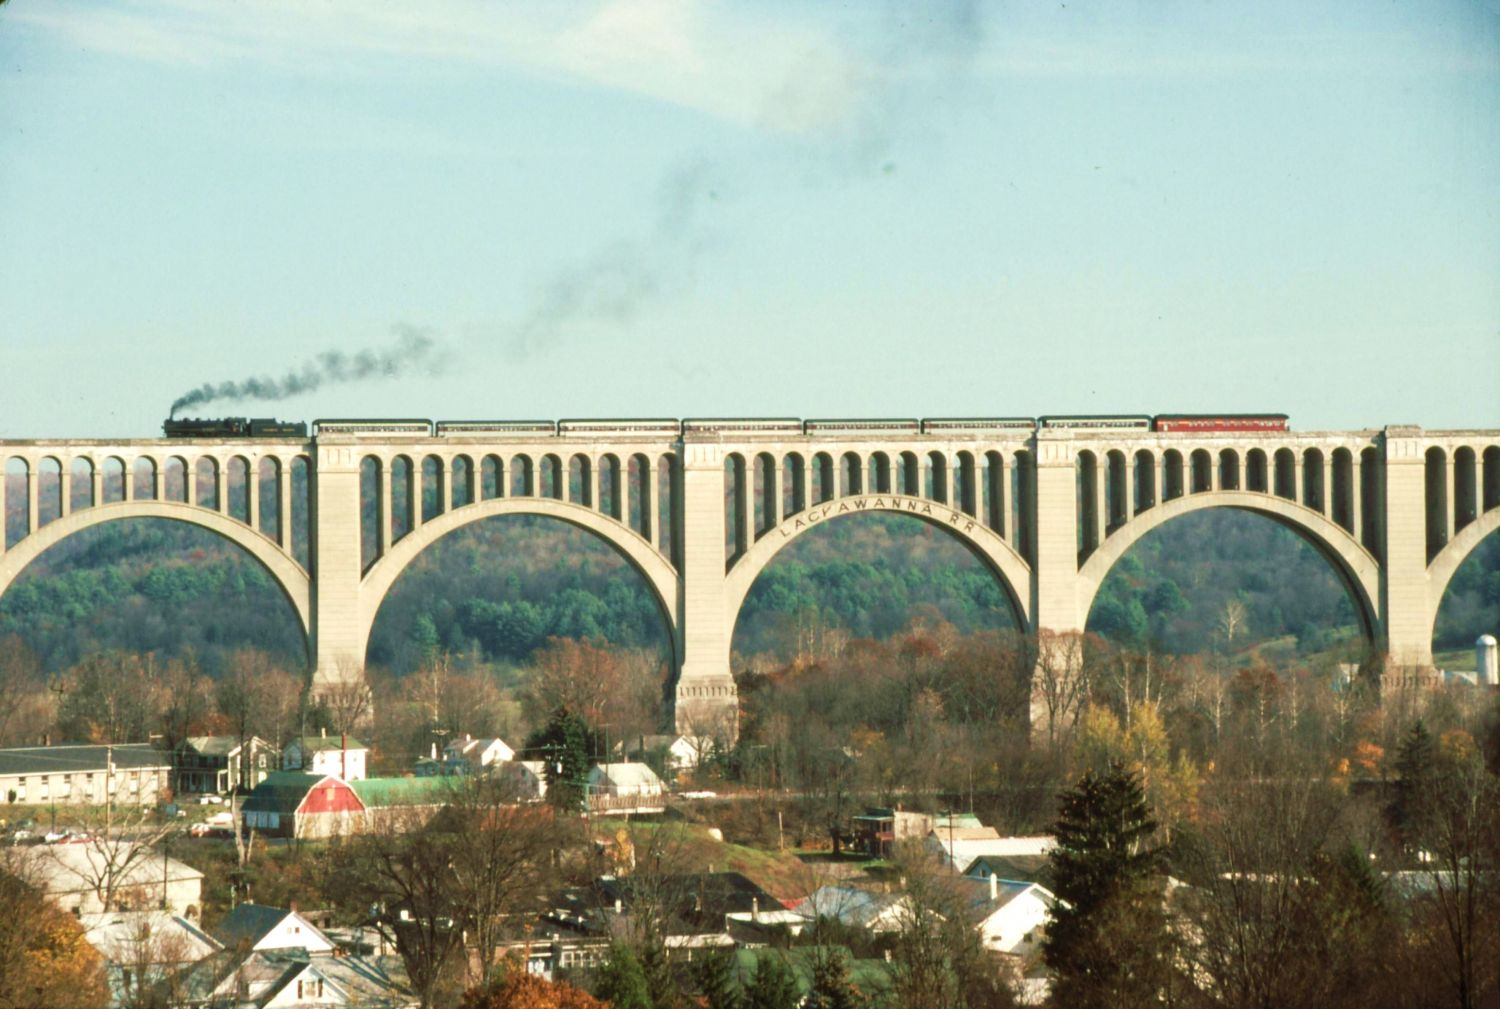 The Tunkhannock Viaduct (also known as the Nicholson Bridge) - Photo Credit: WallyFromColumbia at English Wikipedia [Public domain], via Wikimedia Commons